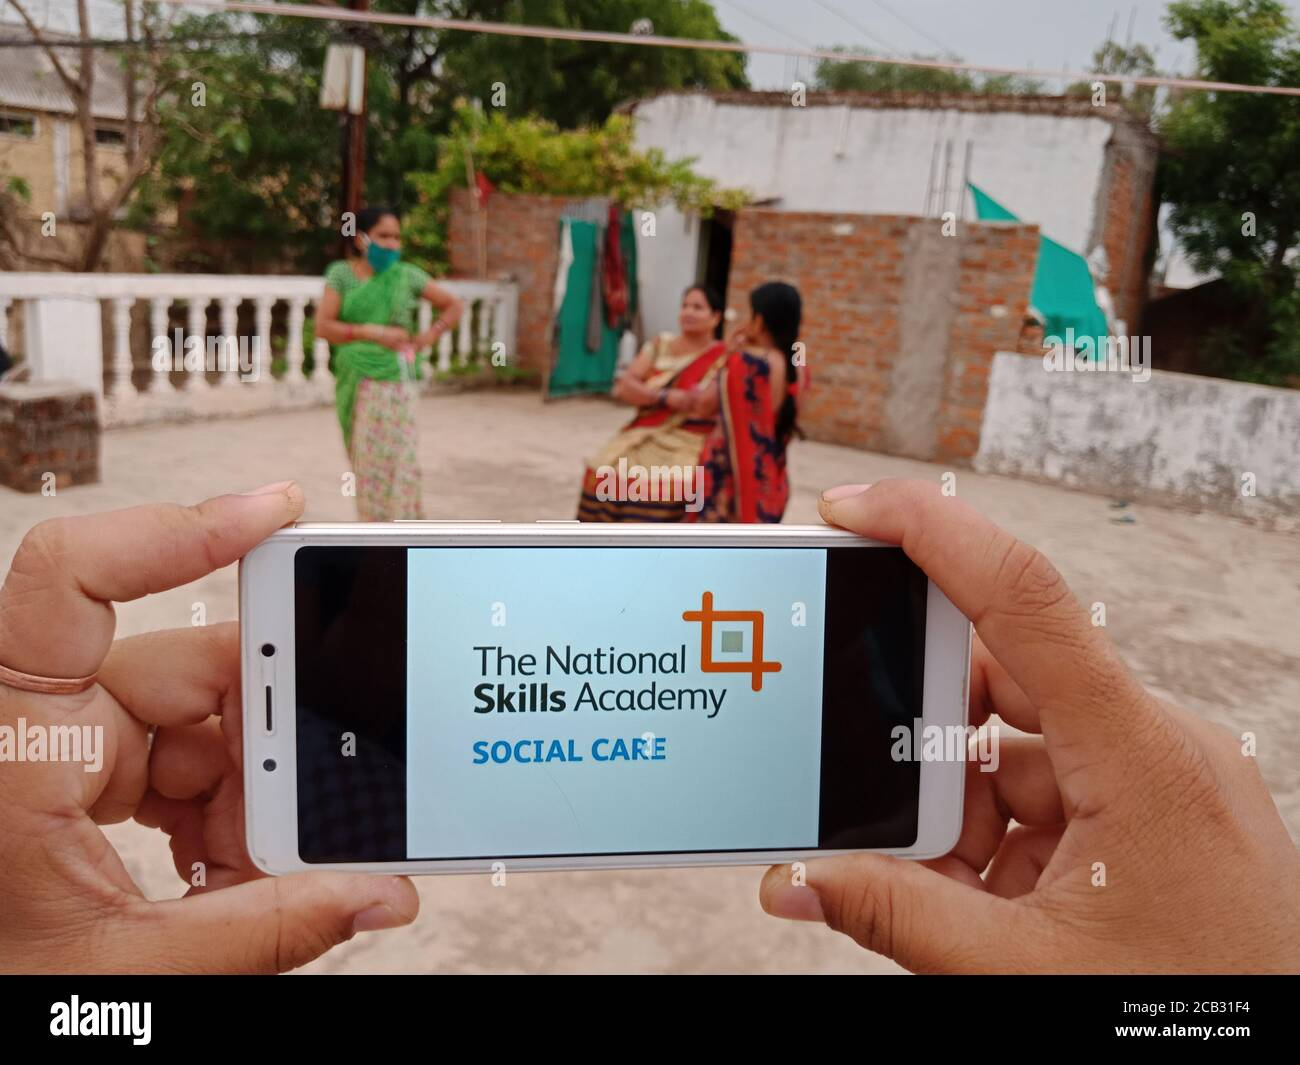 DISTRICT KATNI, INDIA - MAY 23, 2020: Woman holding smart phone with the national skills academy social care scheme on screen. Indian government rulin Stock Photo